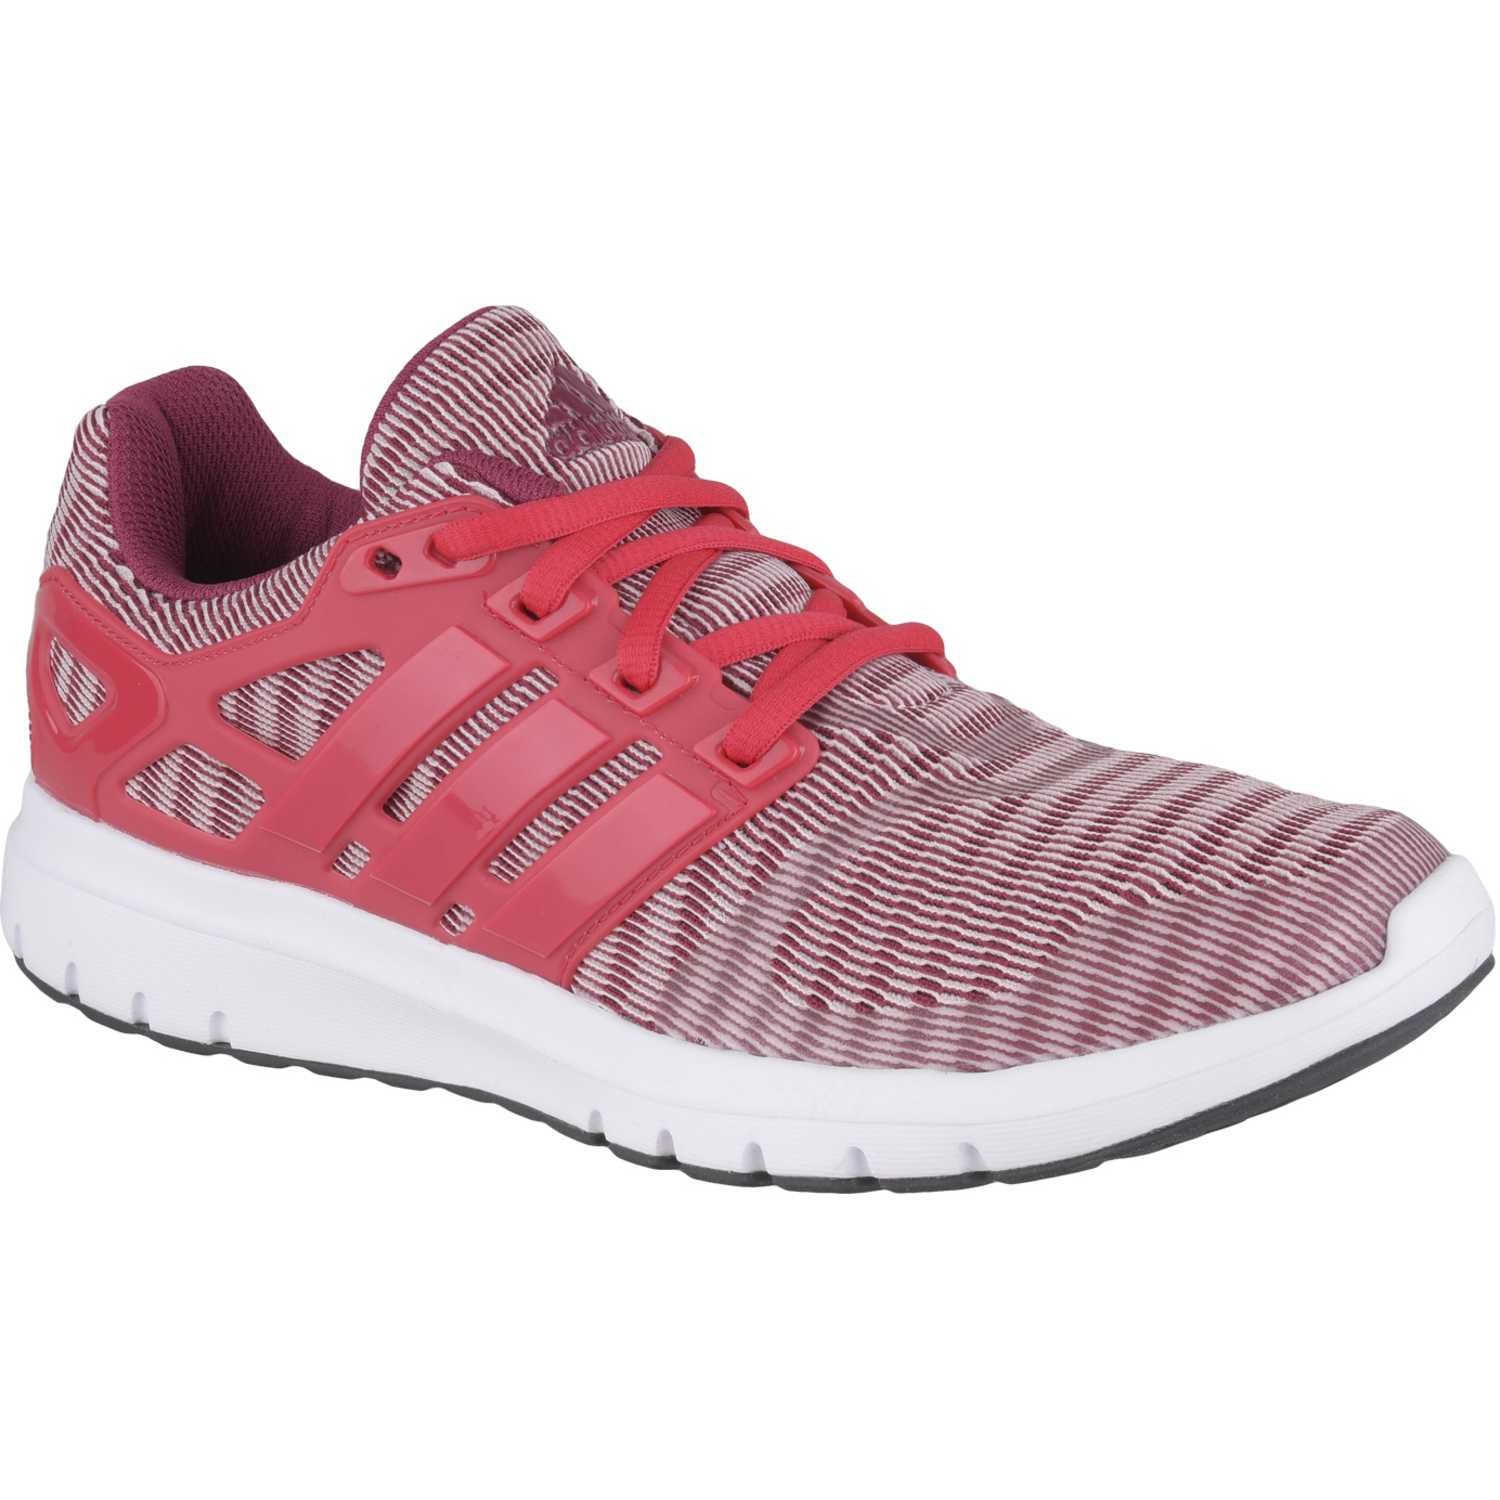 wholesale dealer 15b95 c9dbb Zapatilla de Mujer Adidas Rosado   blanco energy cloud v